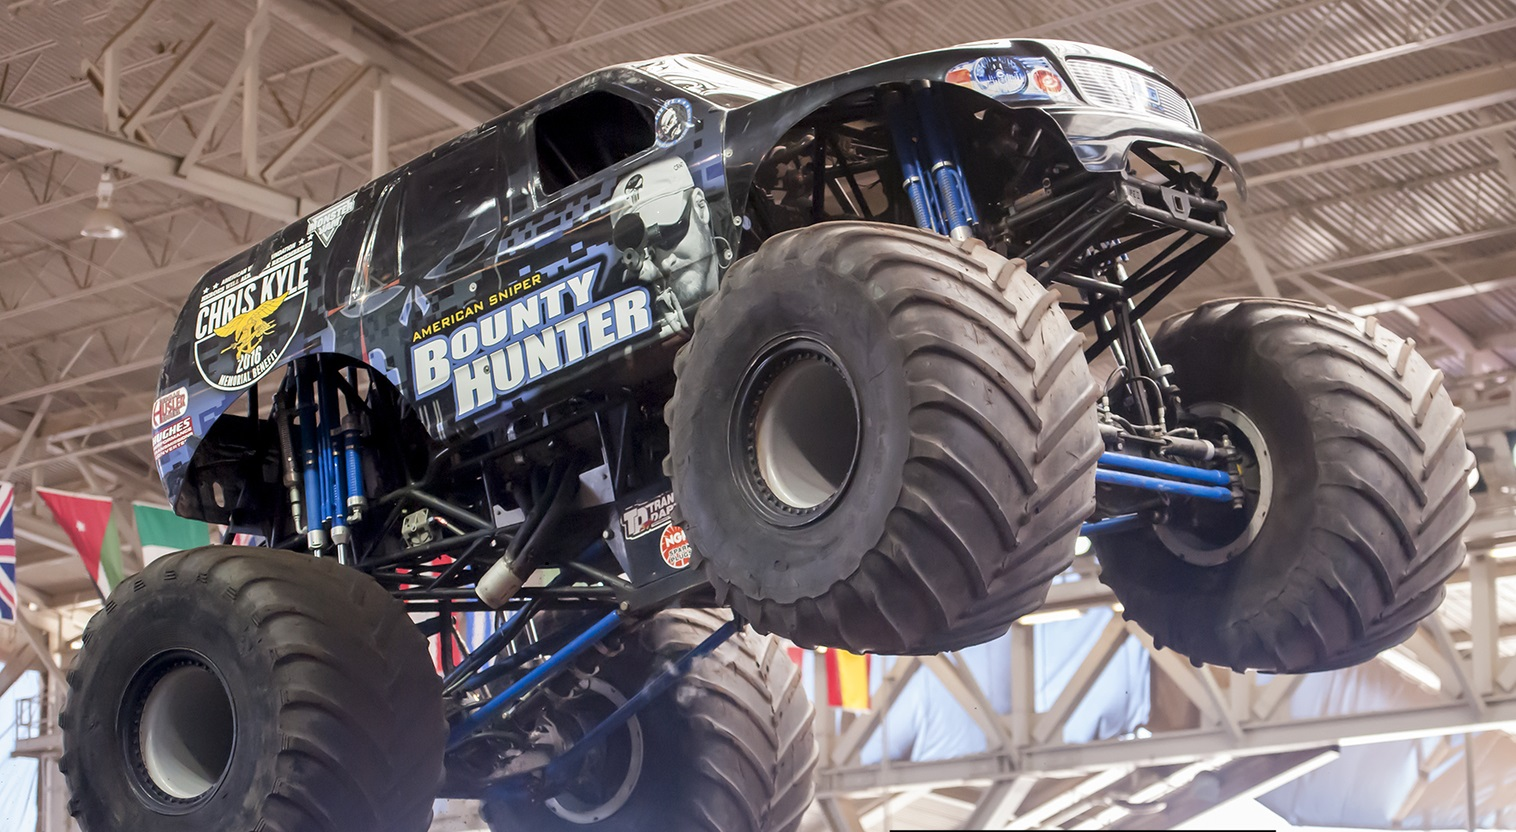 2019 Monster Truck Show - Admission Ticket